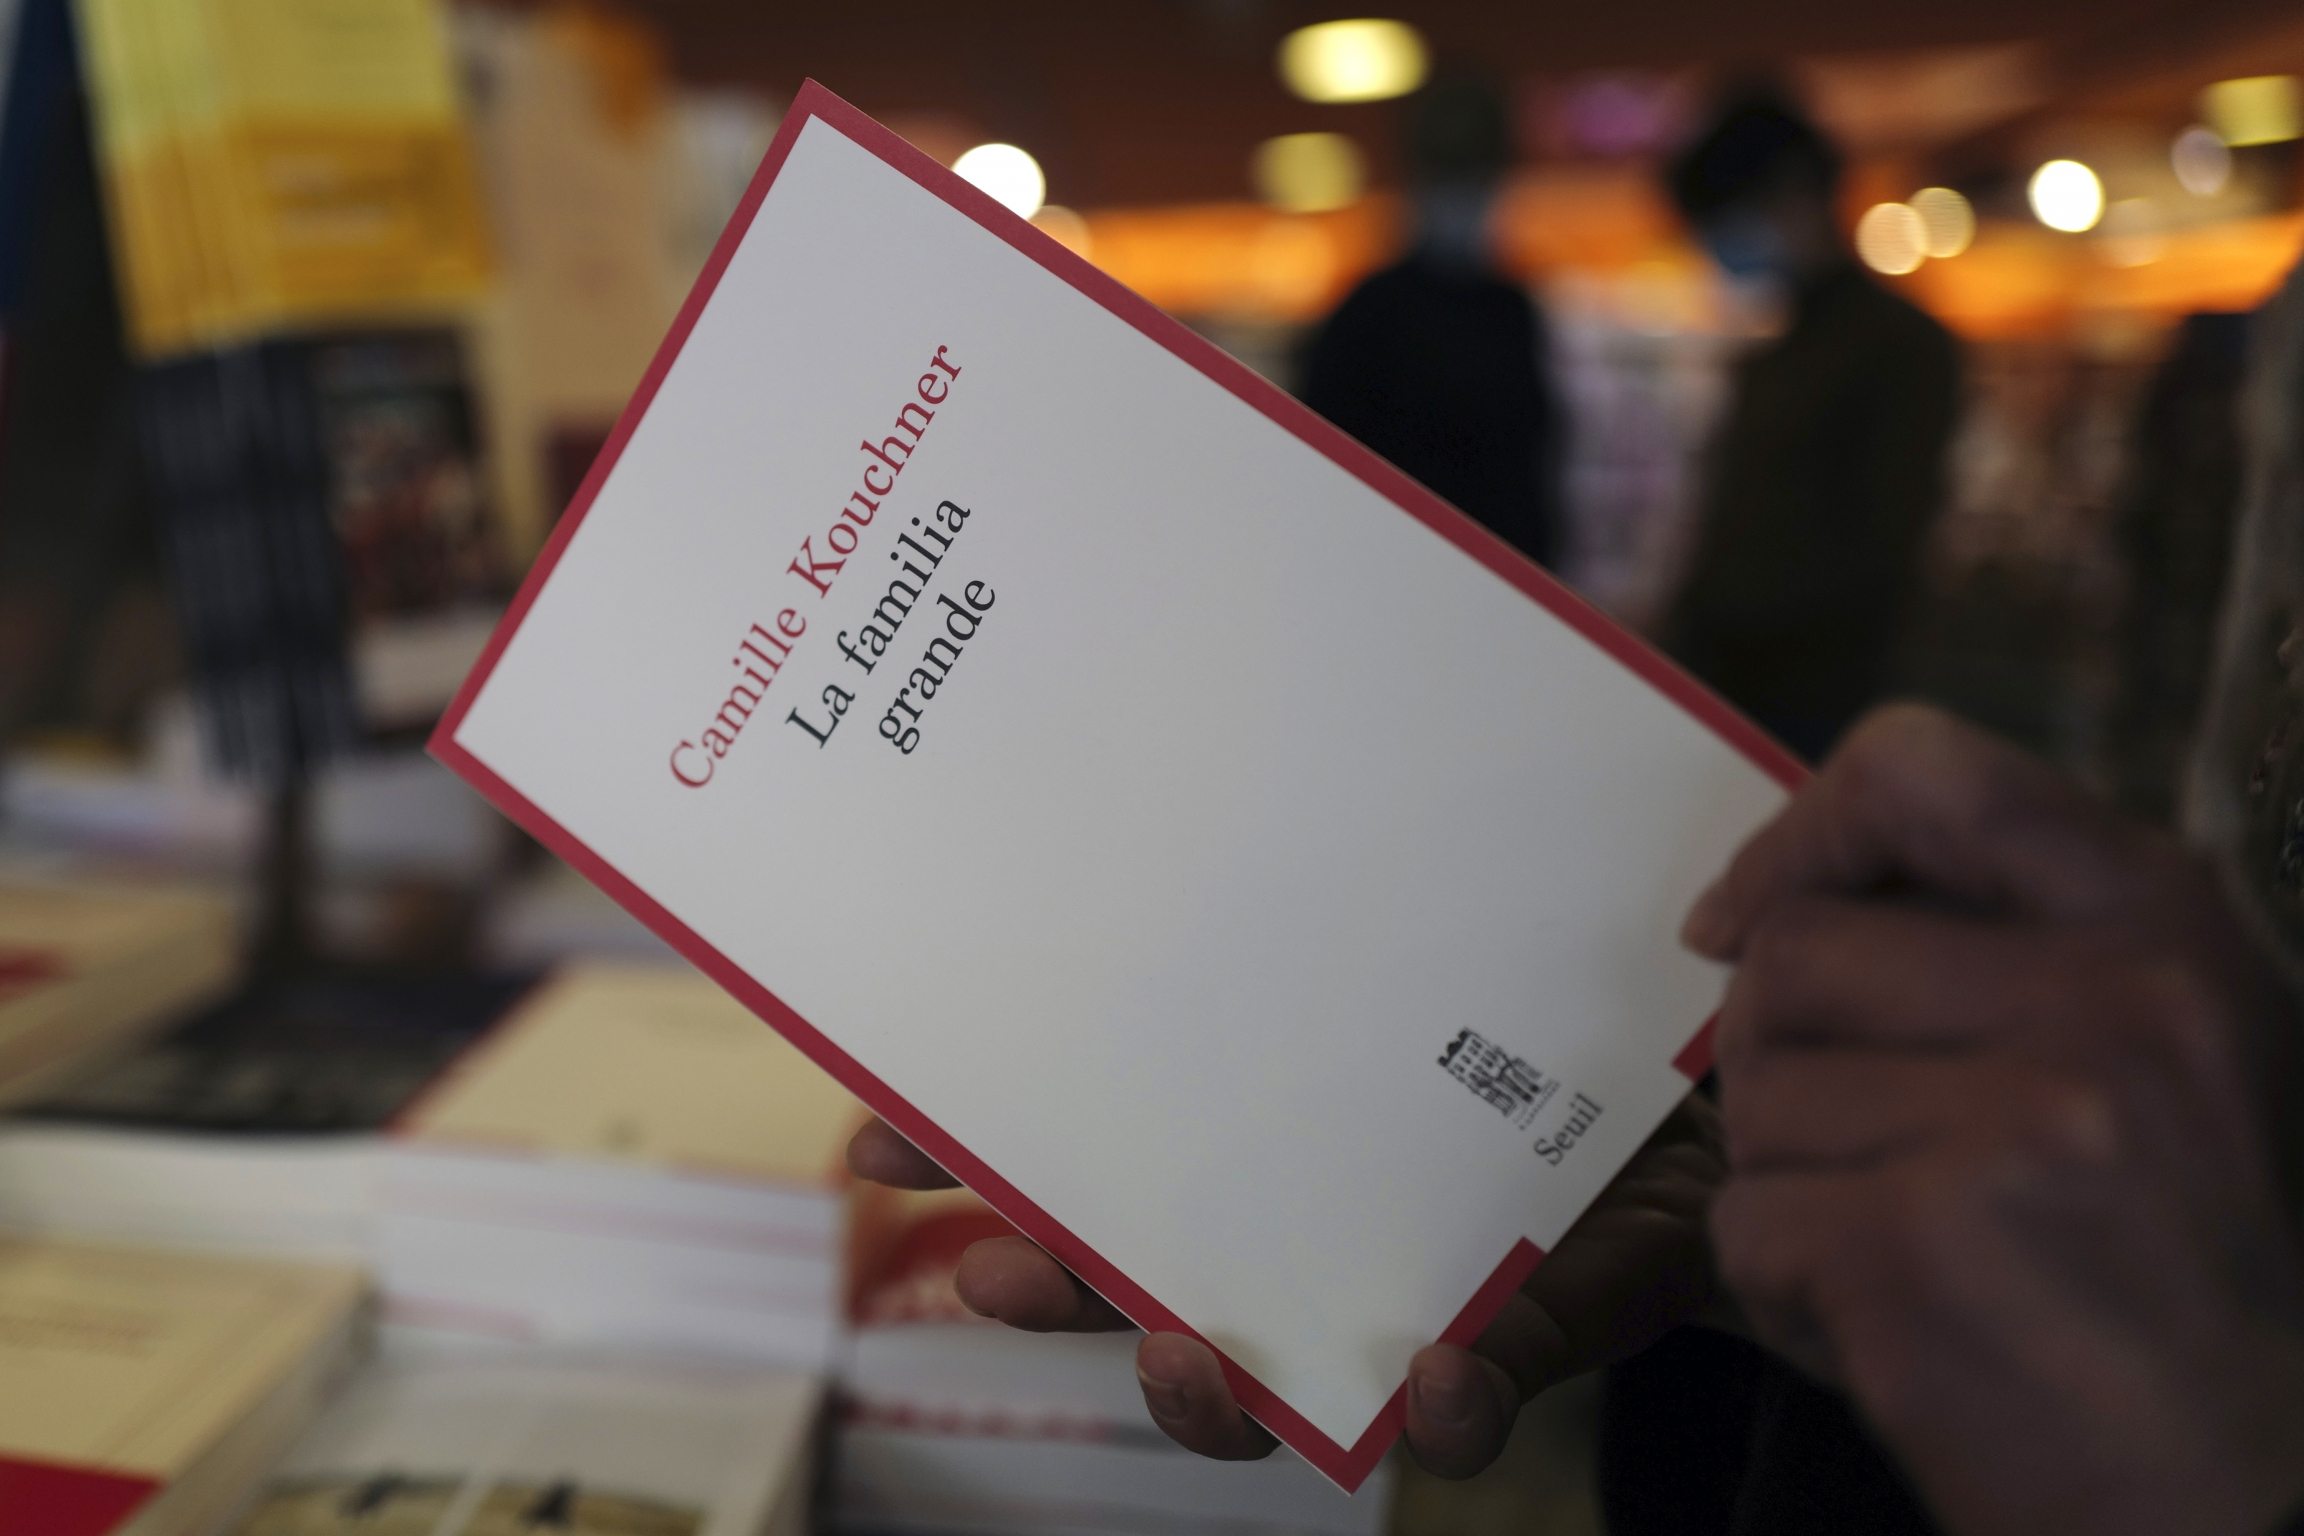 A person holds a book in their hands